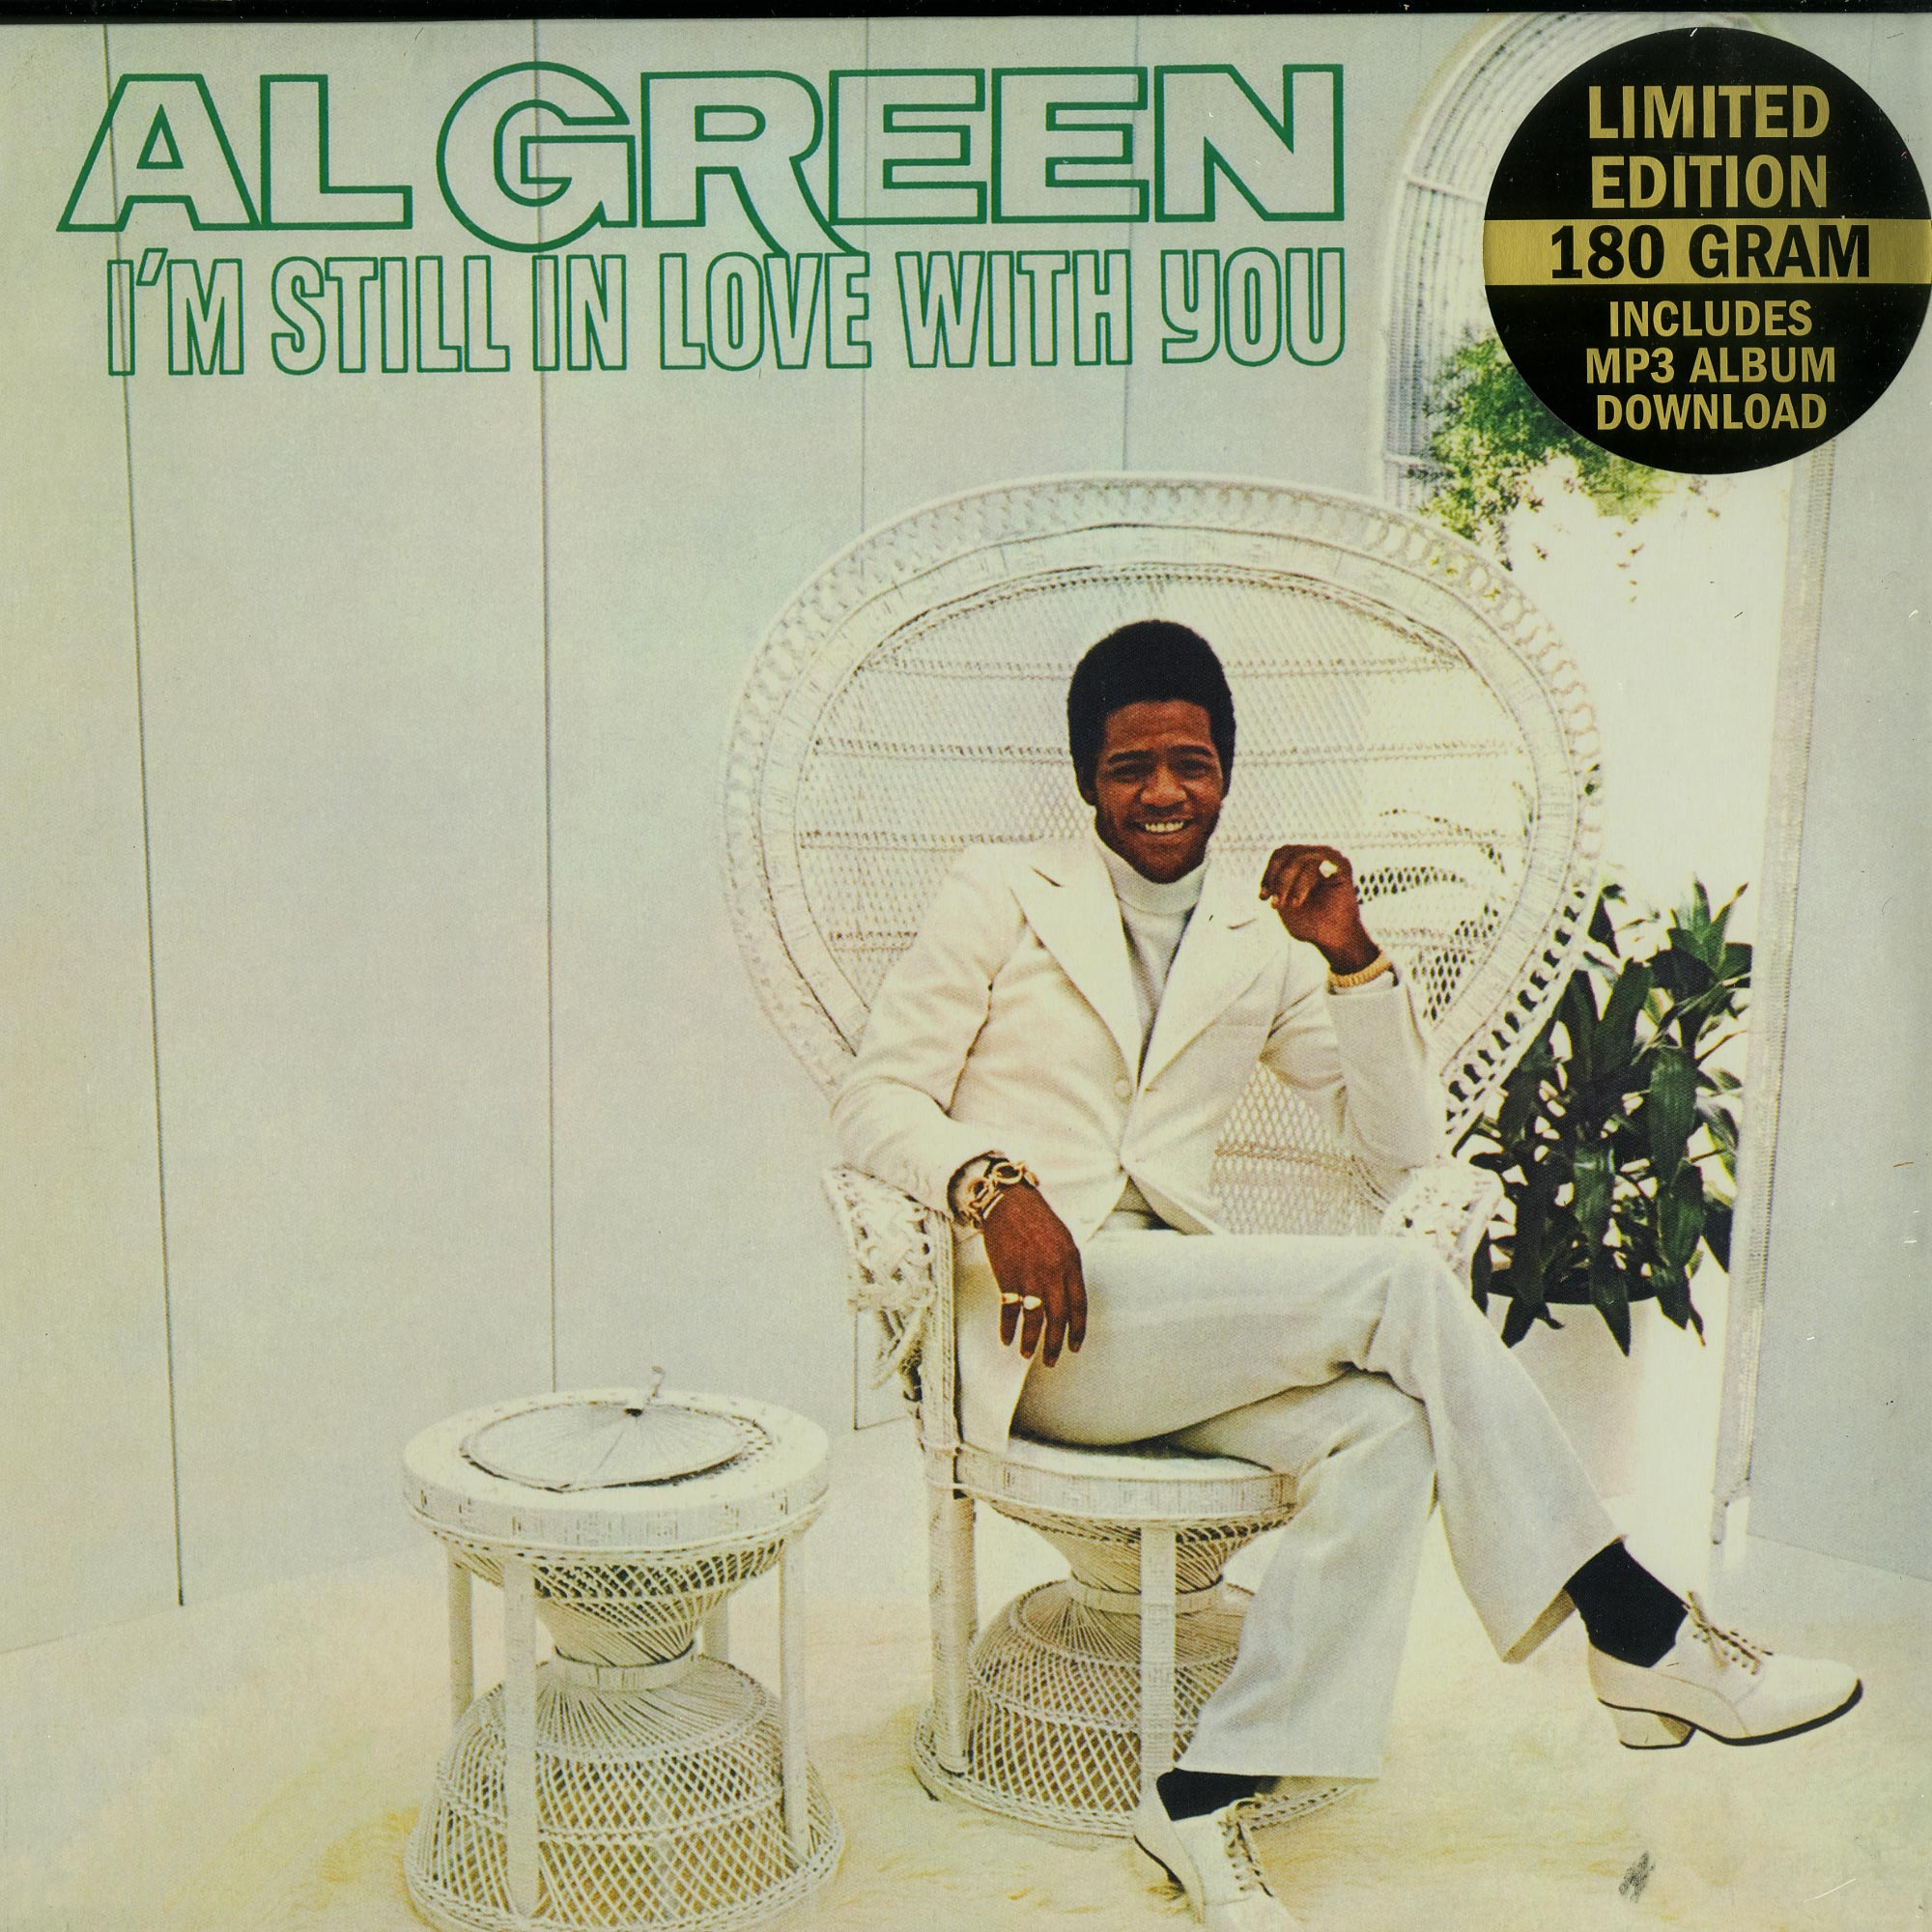 Al Green - I AM STILL IN LOVE WITH YOU